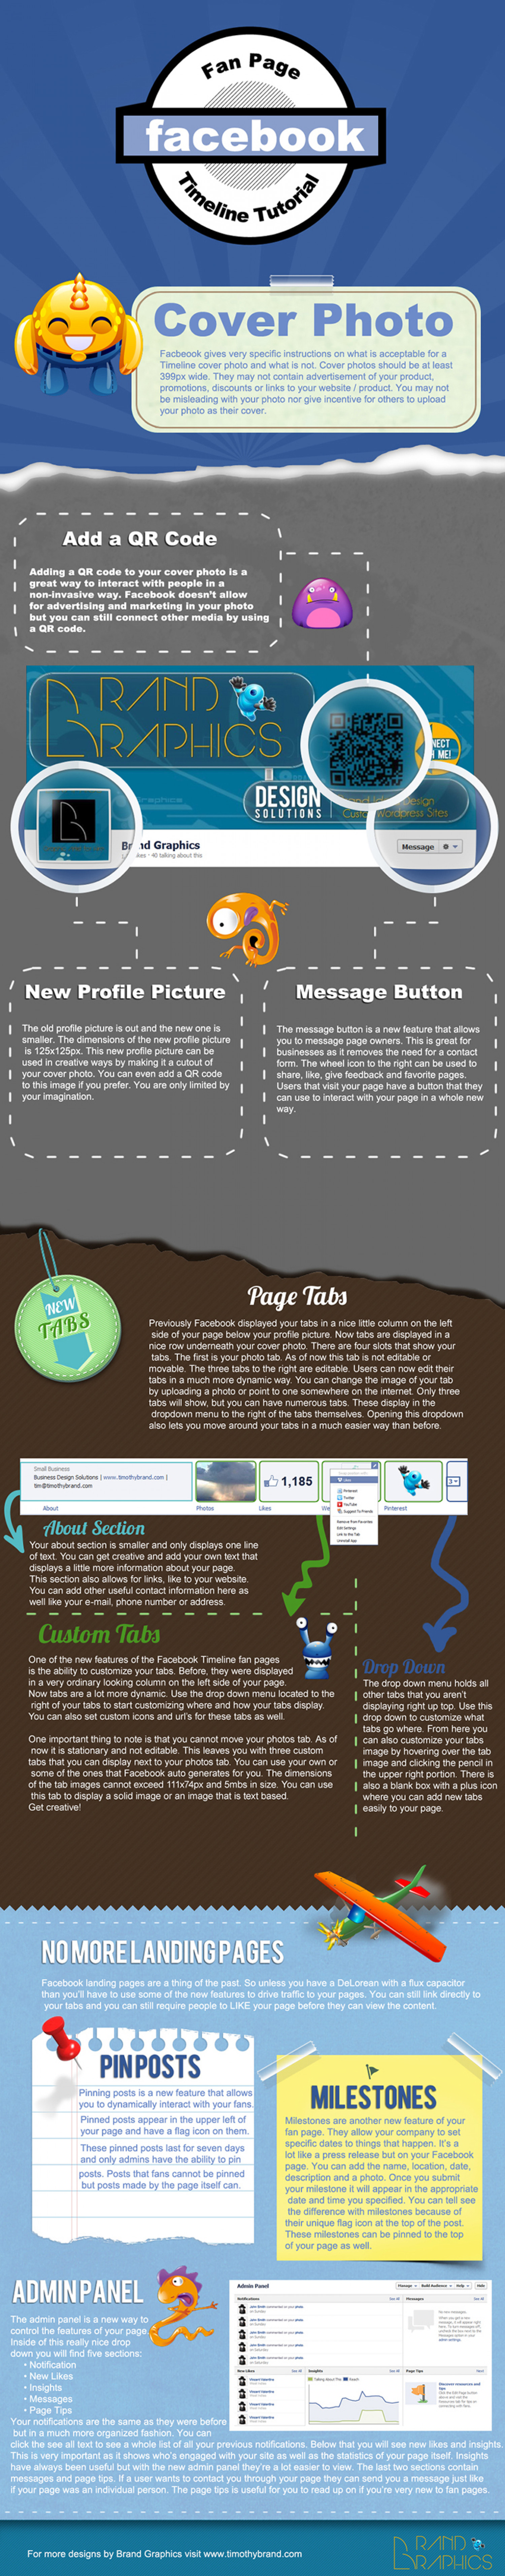 Facebook Fan Page Timeline Tutorial Infographic